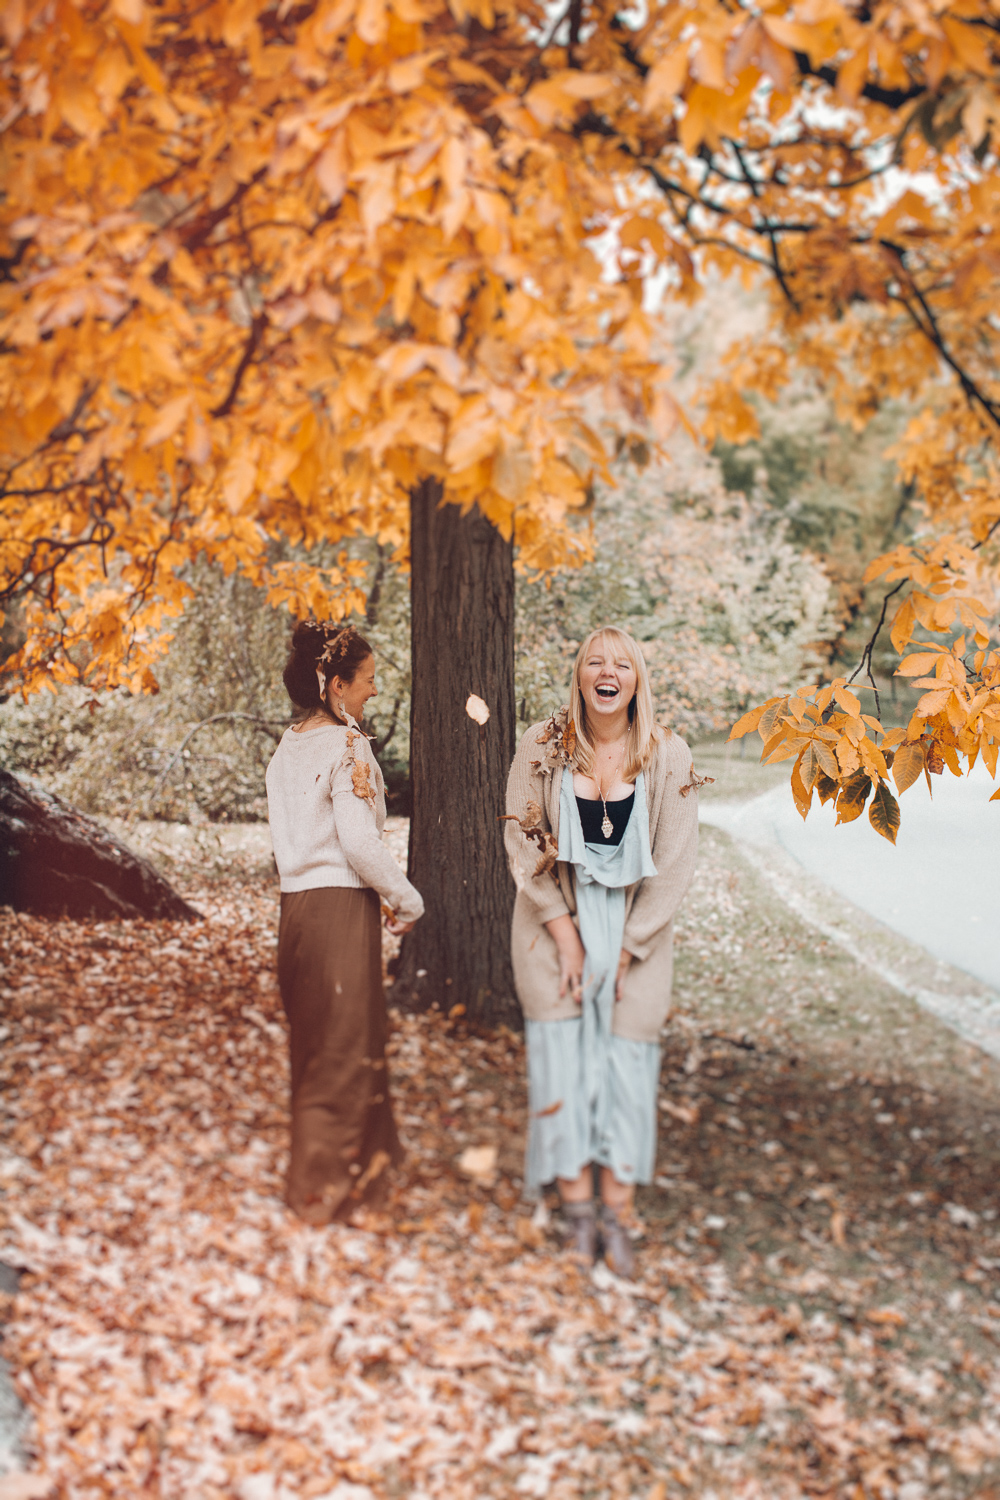 boston-lifestyle-photographer-autumn-themed-shoot-madly-08.jpg